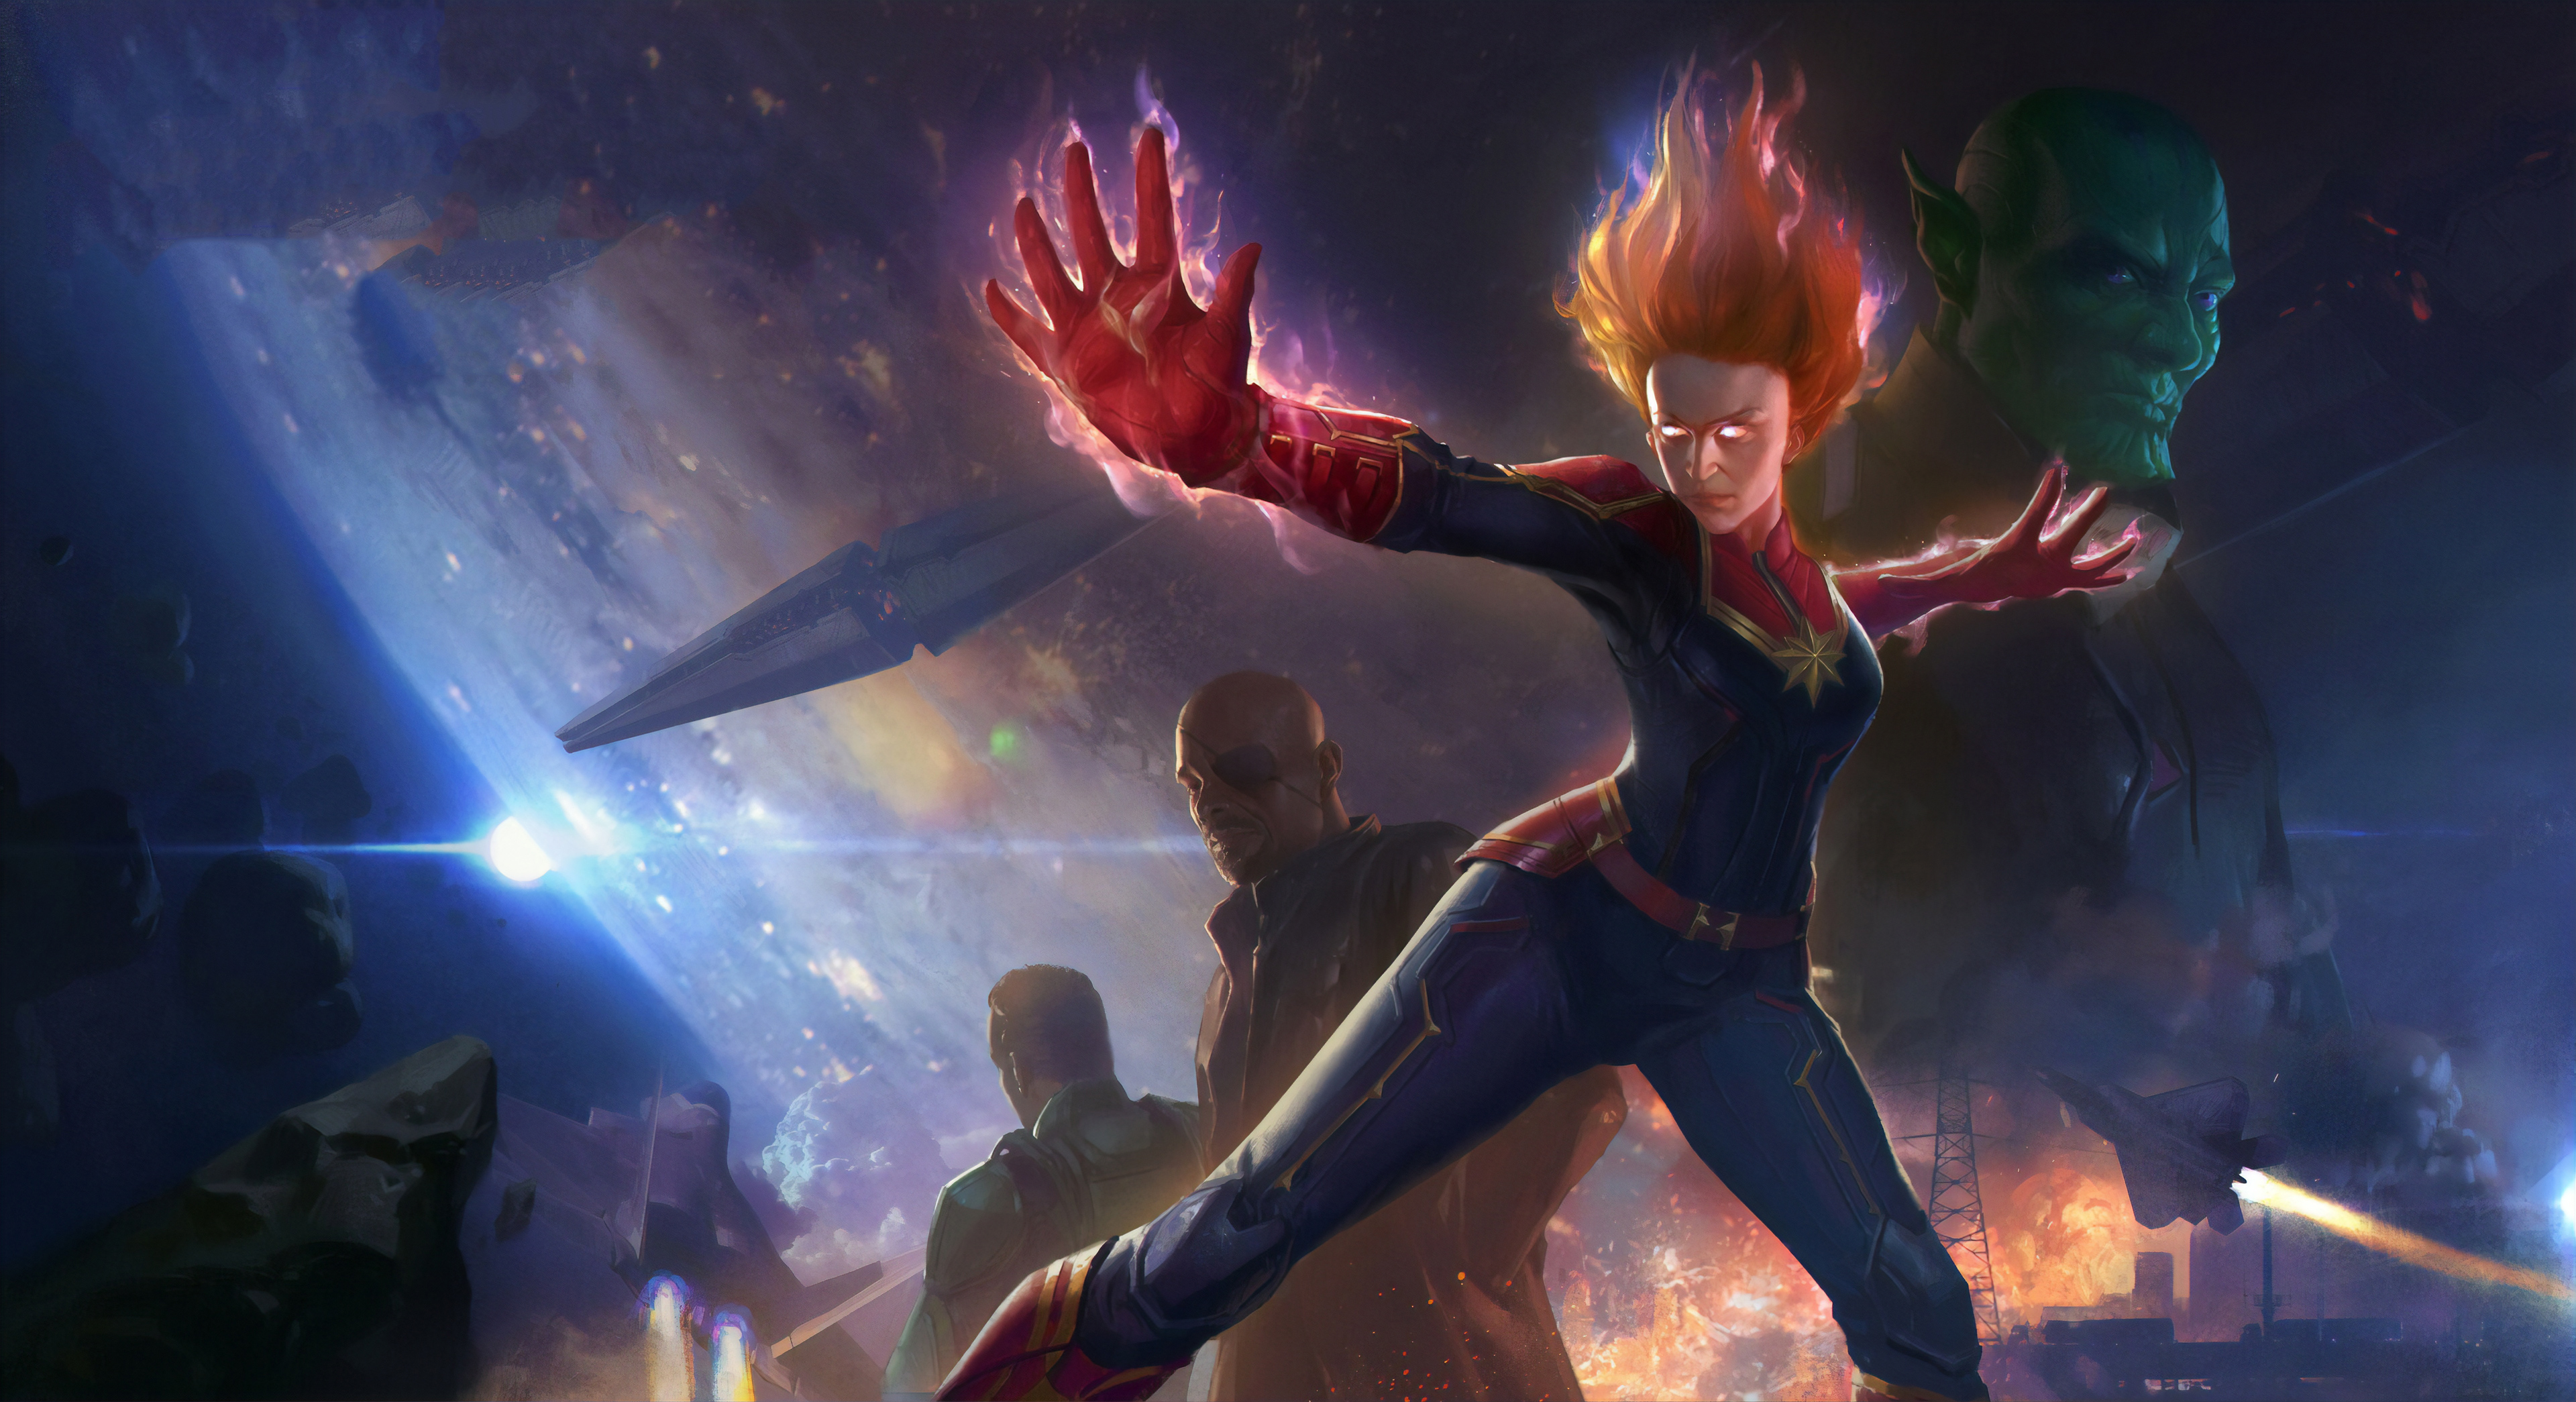 1920x1080 Captain Marvel Movie Concept Art Laptop Full Hd